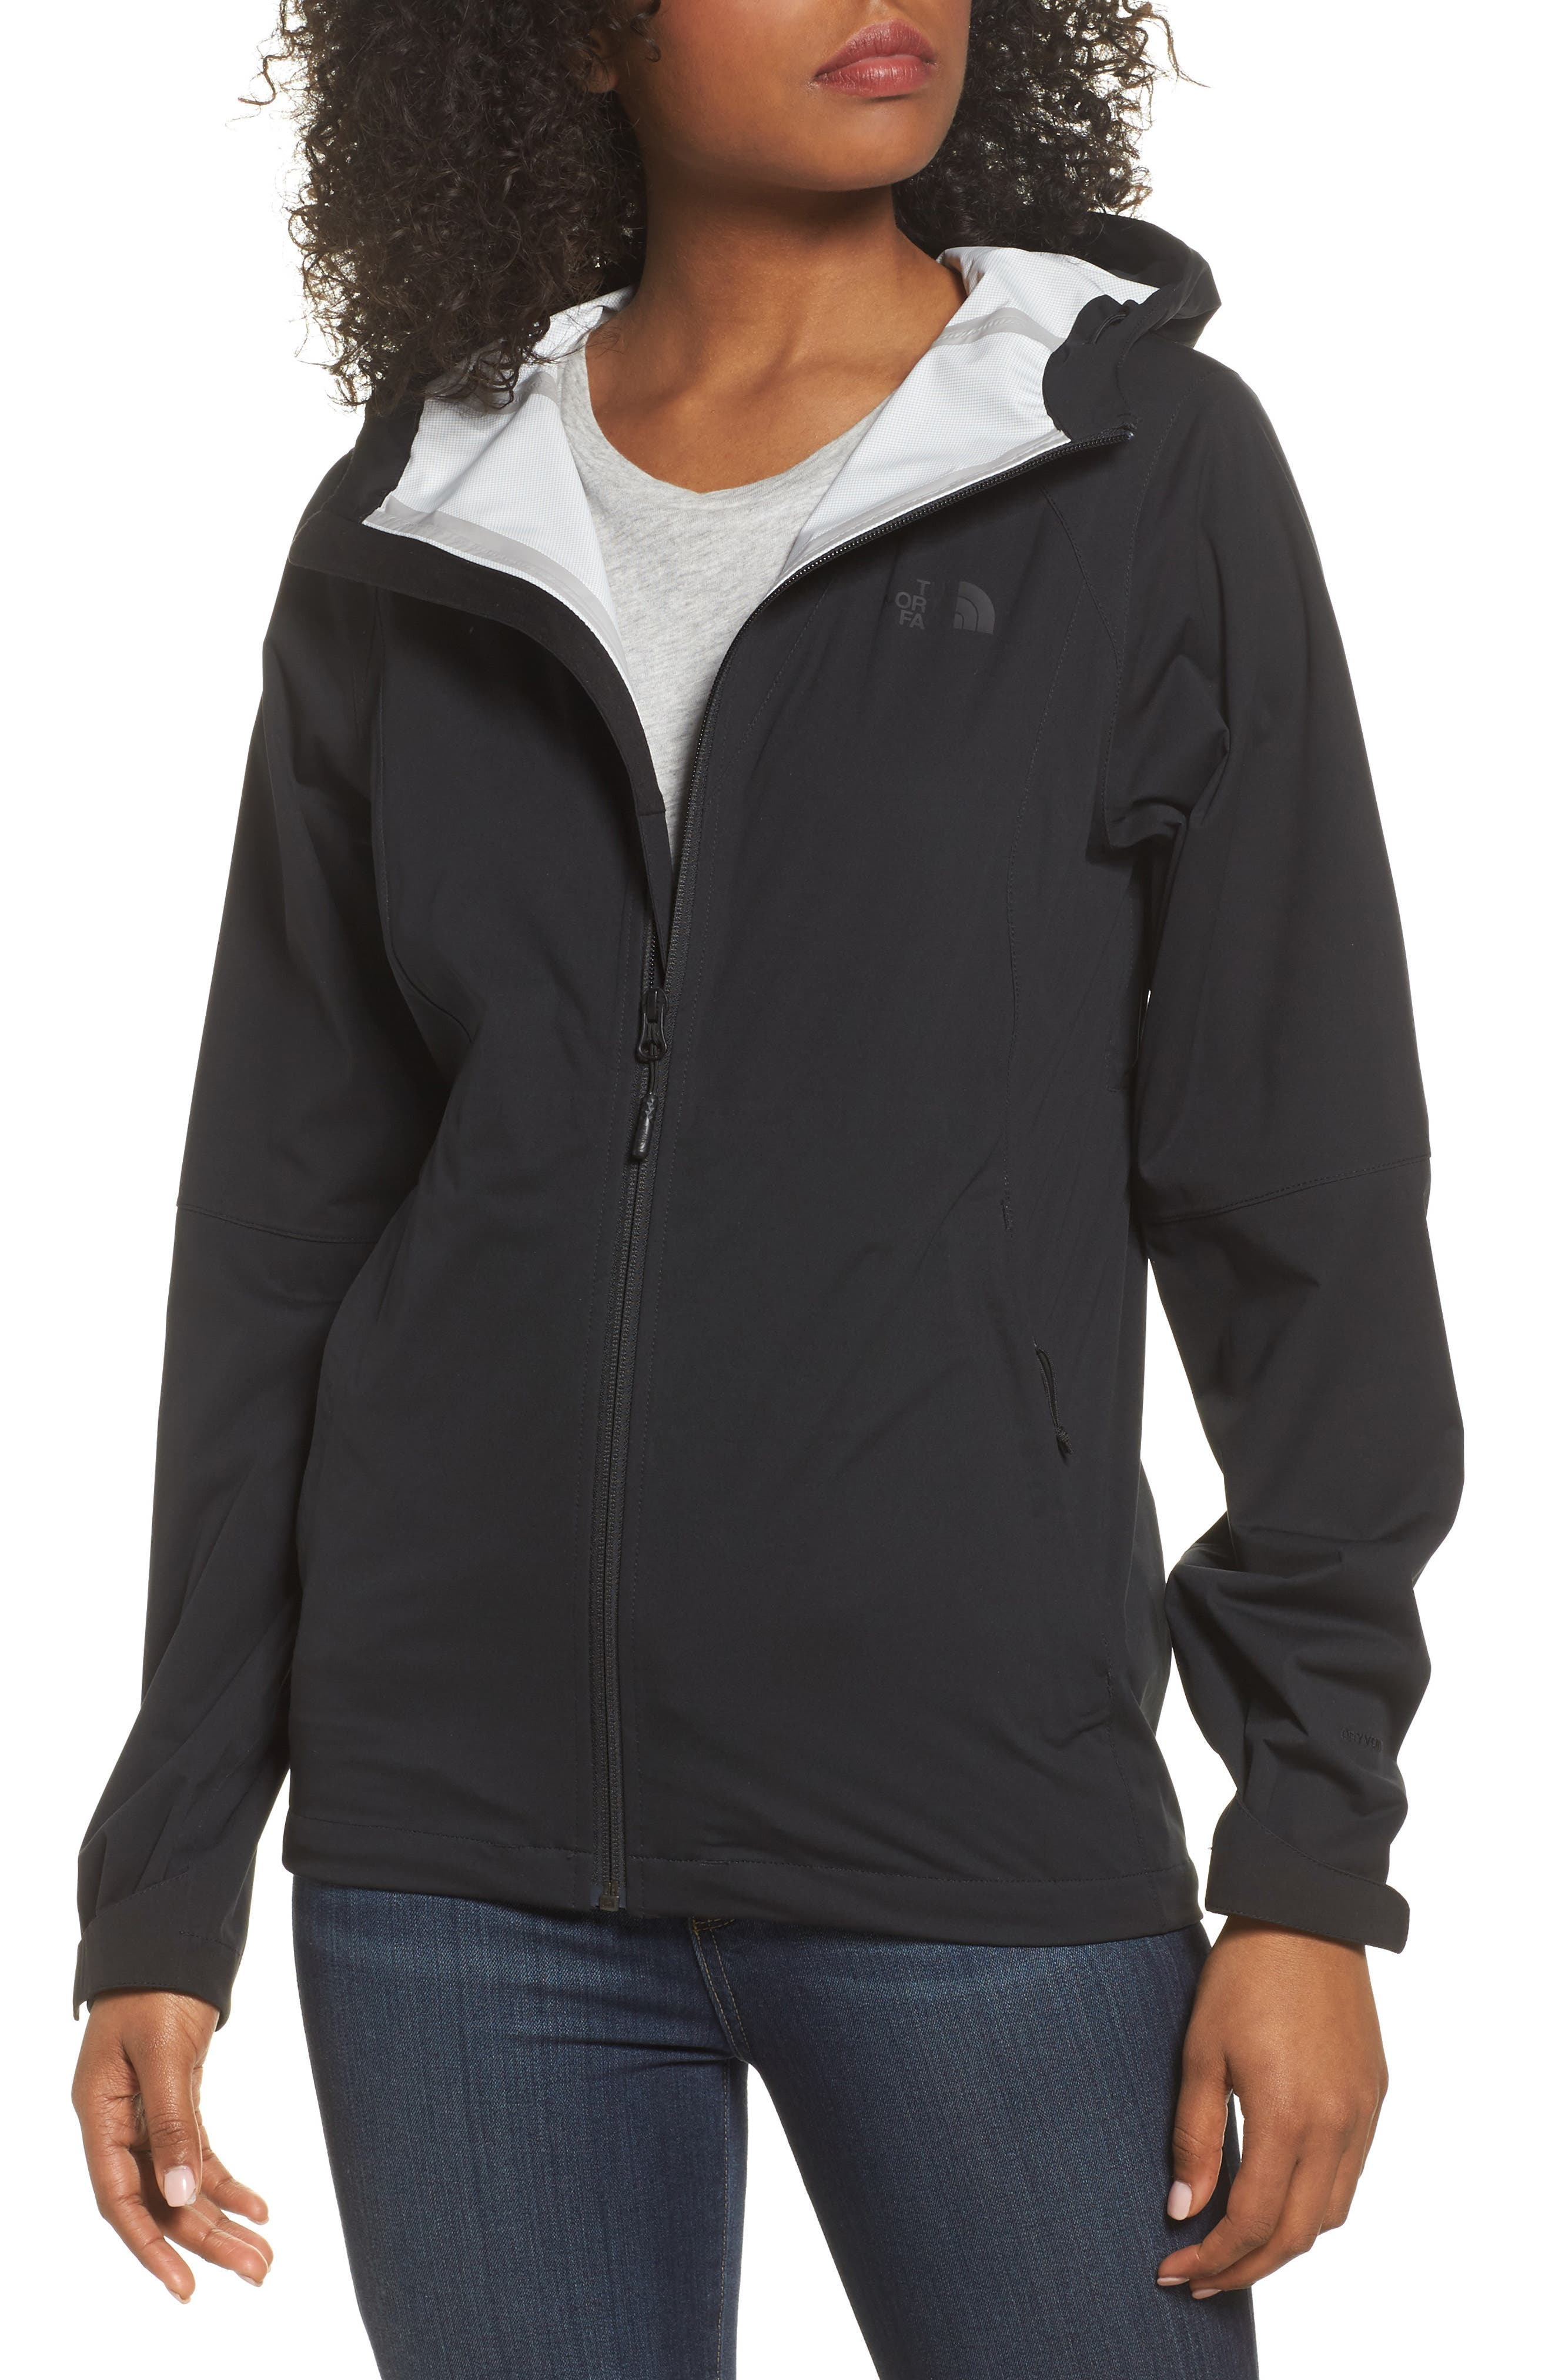 THE NORTH FACE, Allproof Stretch Jacket, Main thumbnail 1, color, 001